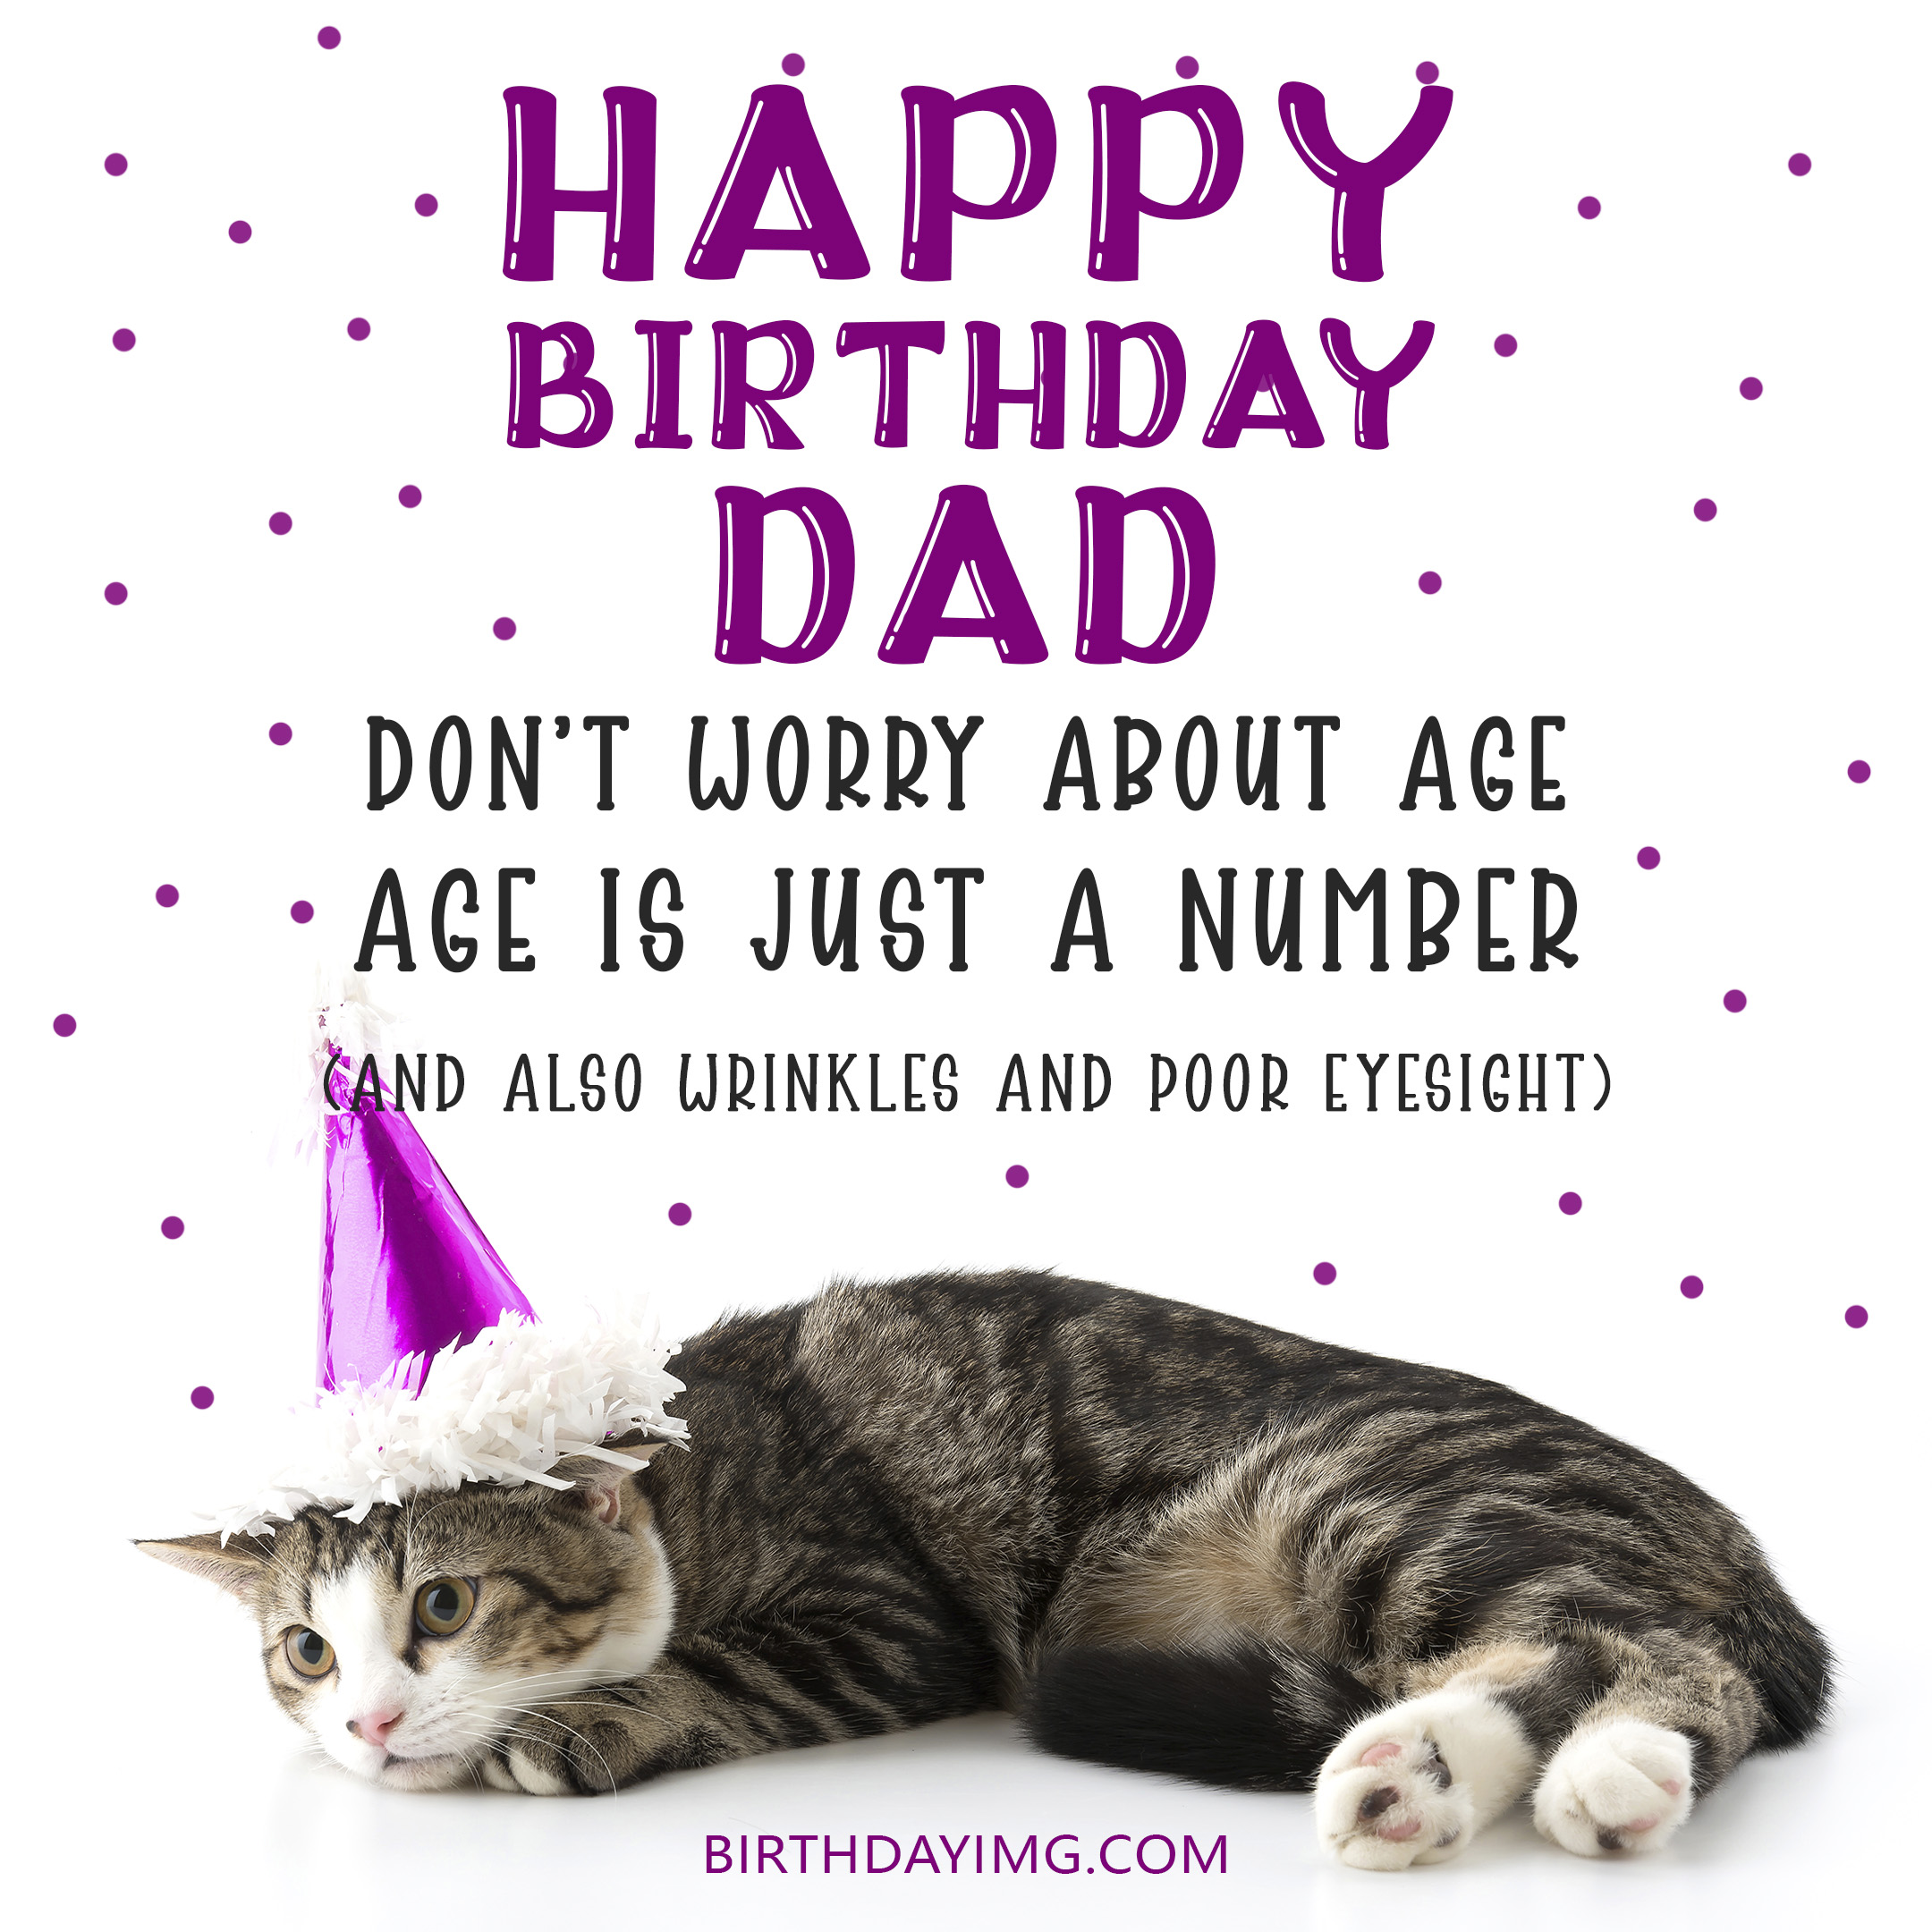 Free Happy Birthday and Image For Dad With Funny Cat - birthdayimg.com